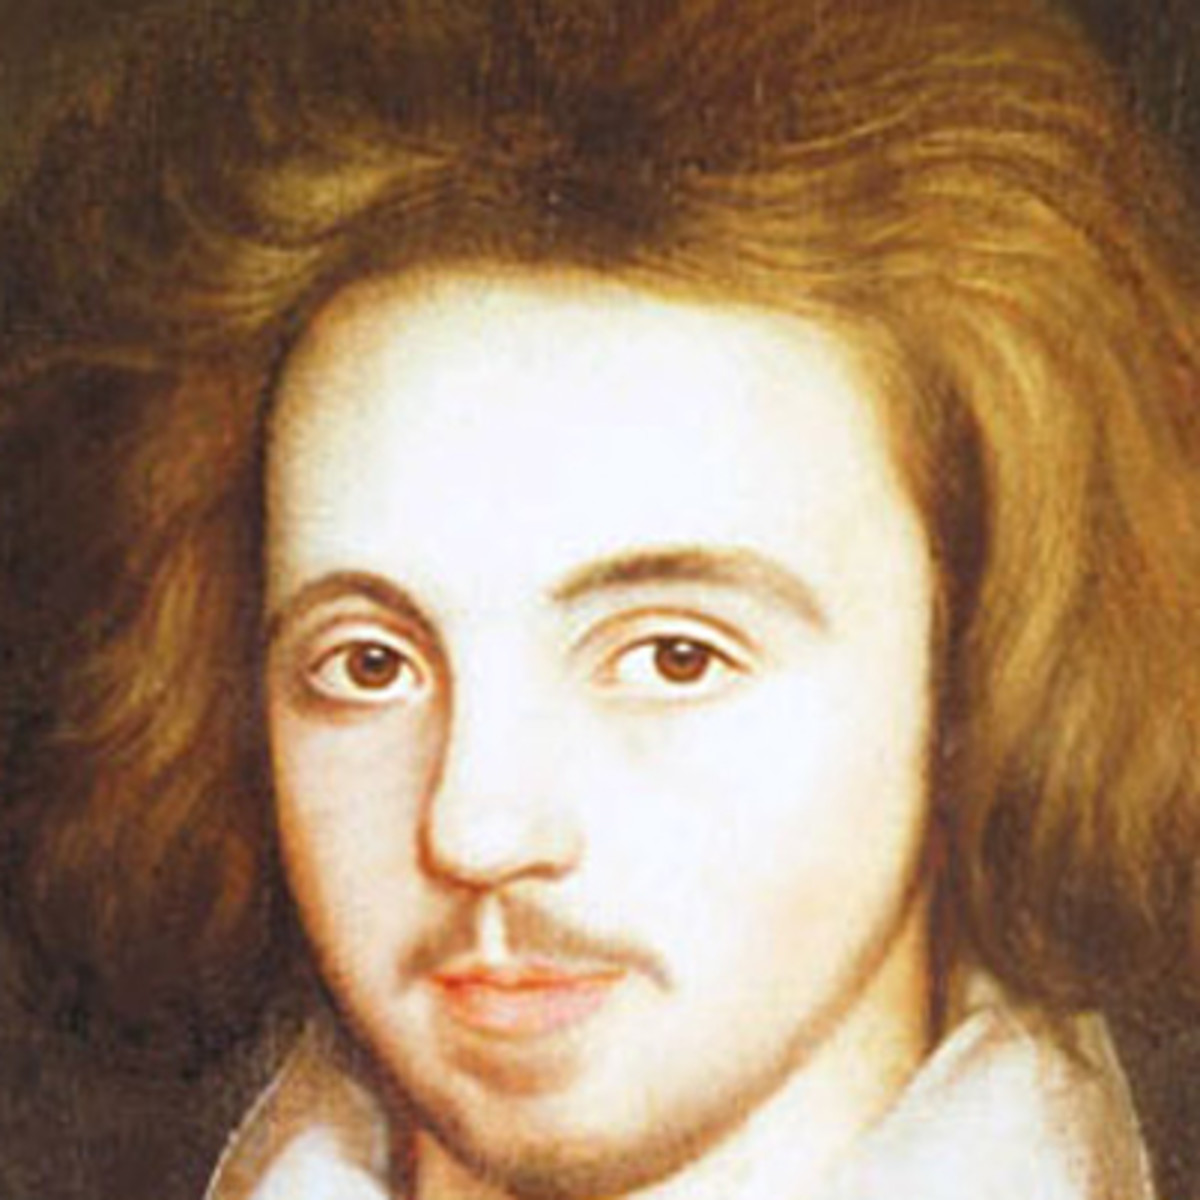 christopher marlowe poet playwright com